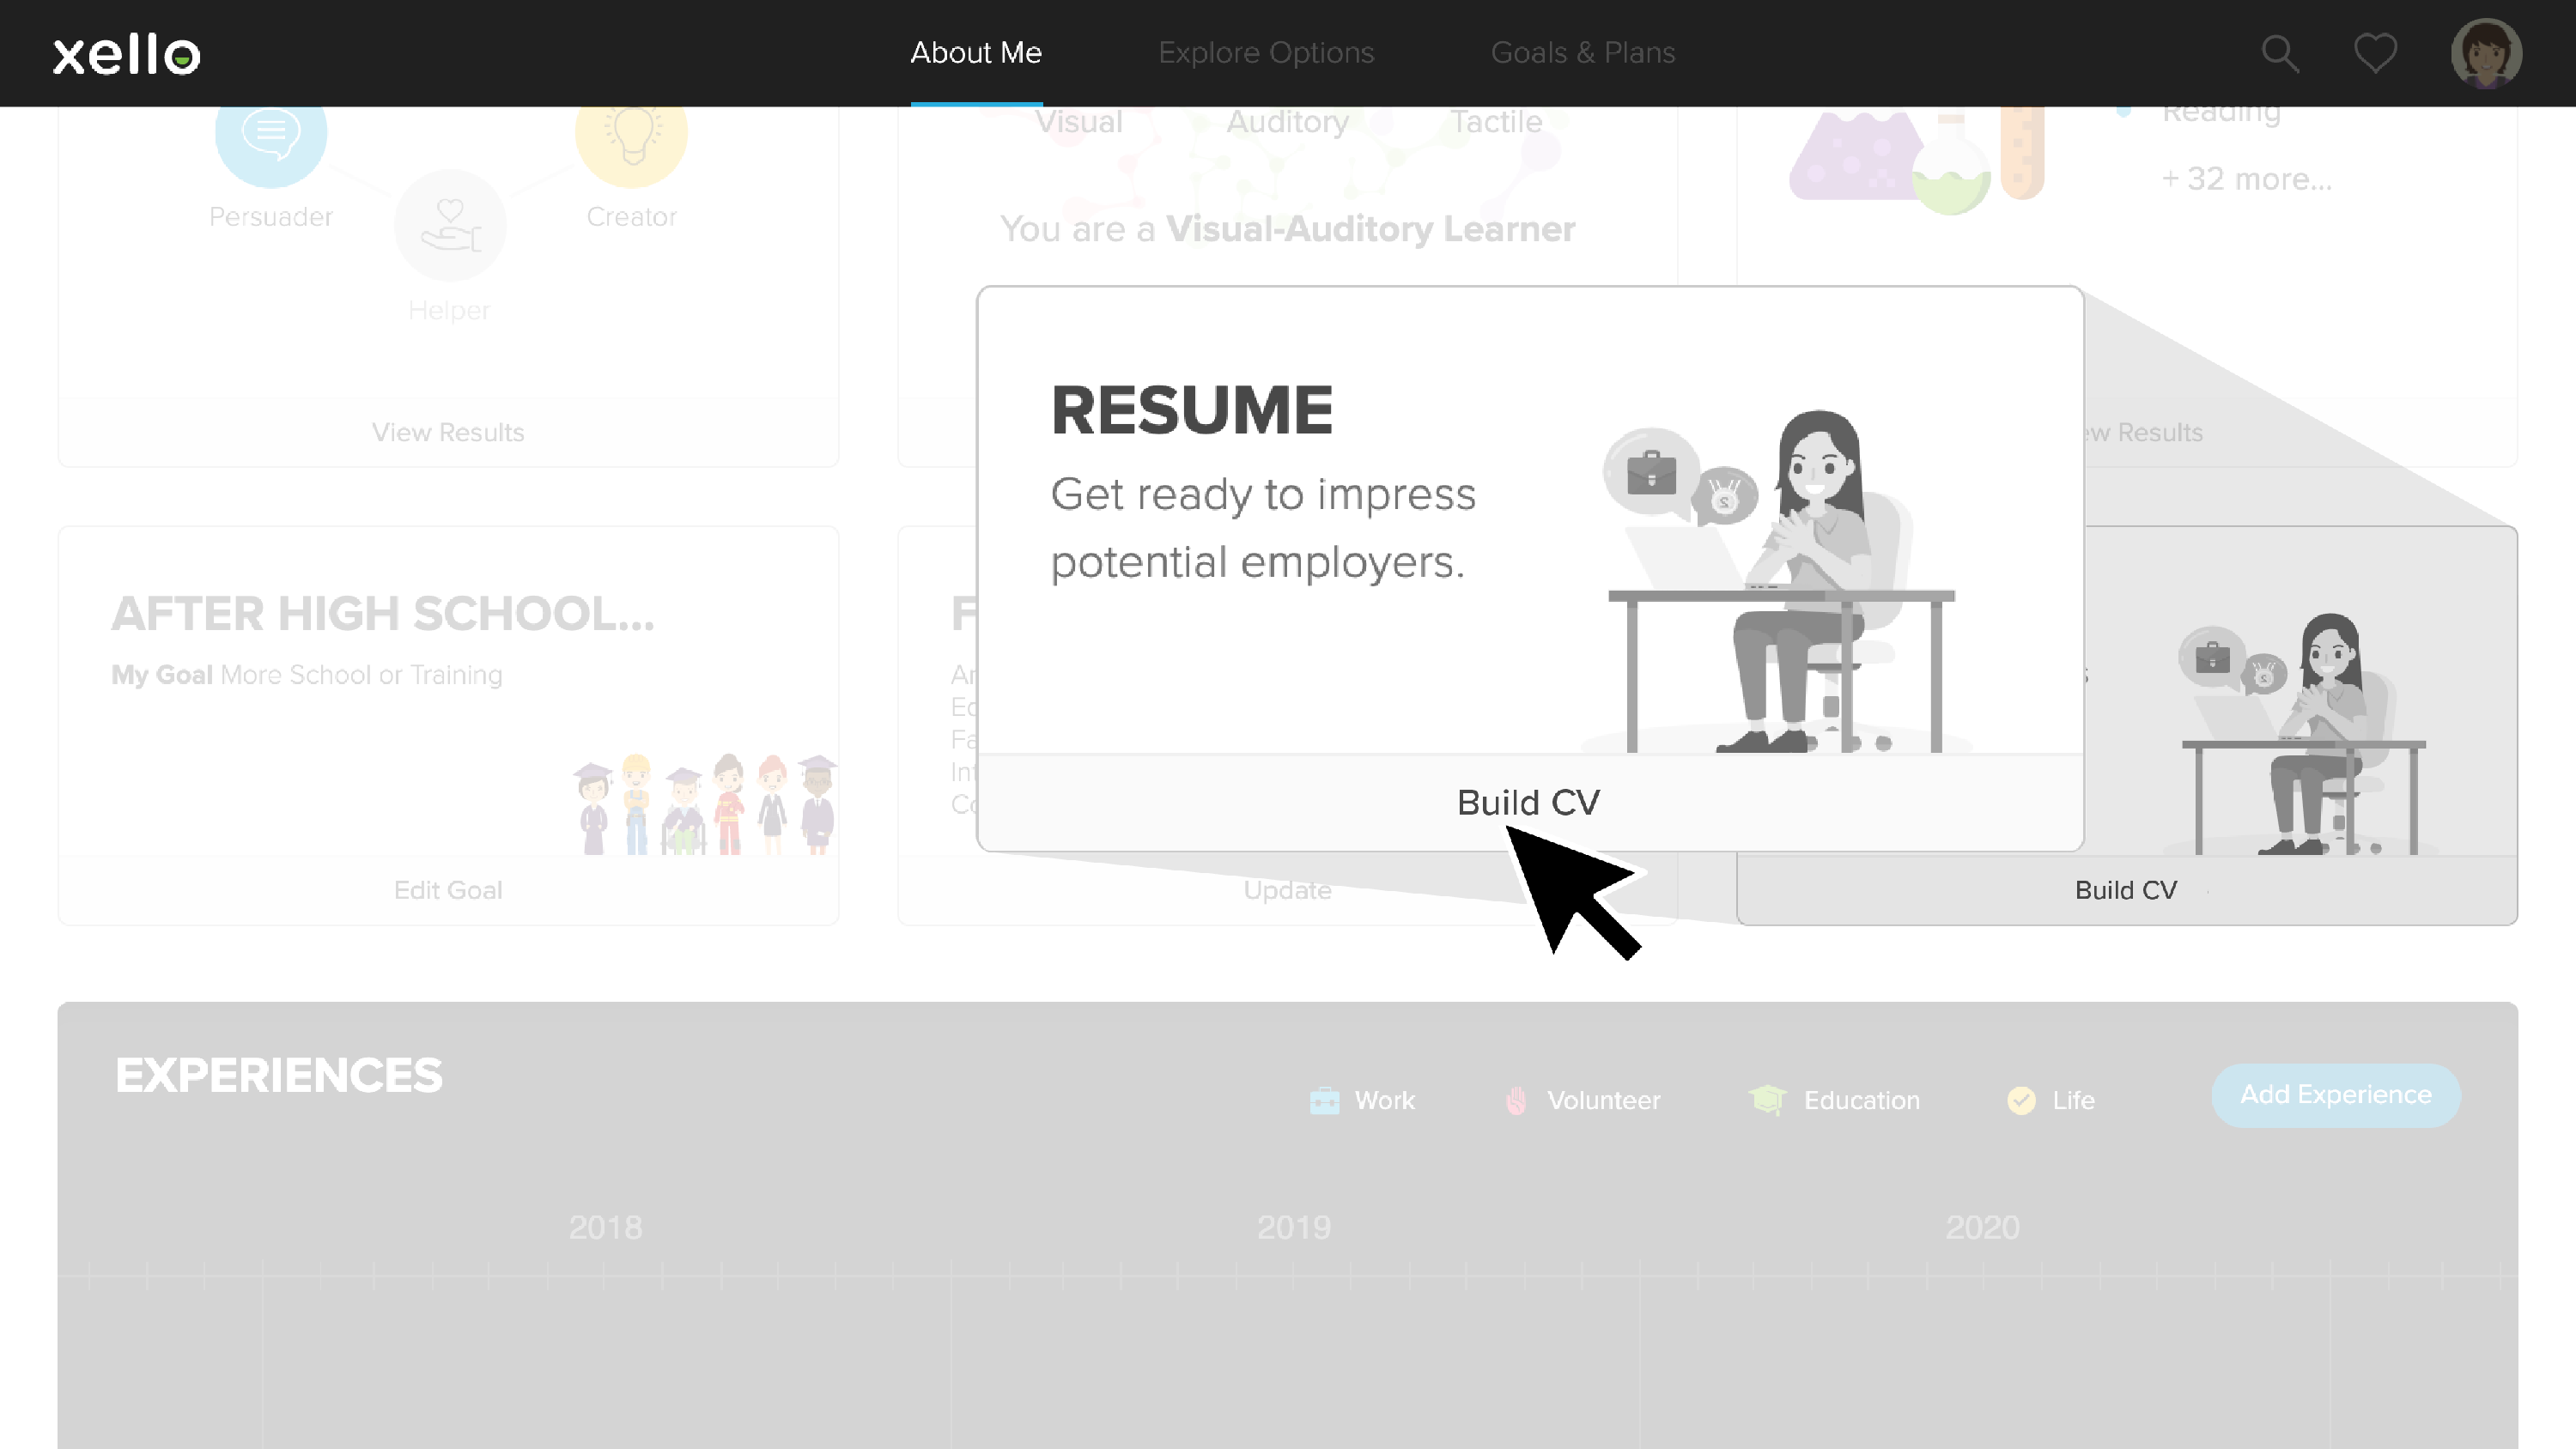 CV builder highlighted midway down the About Me page of the student experience in Xello